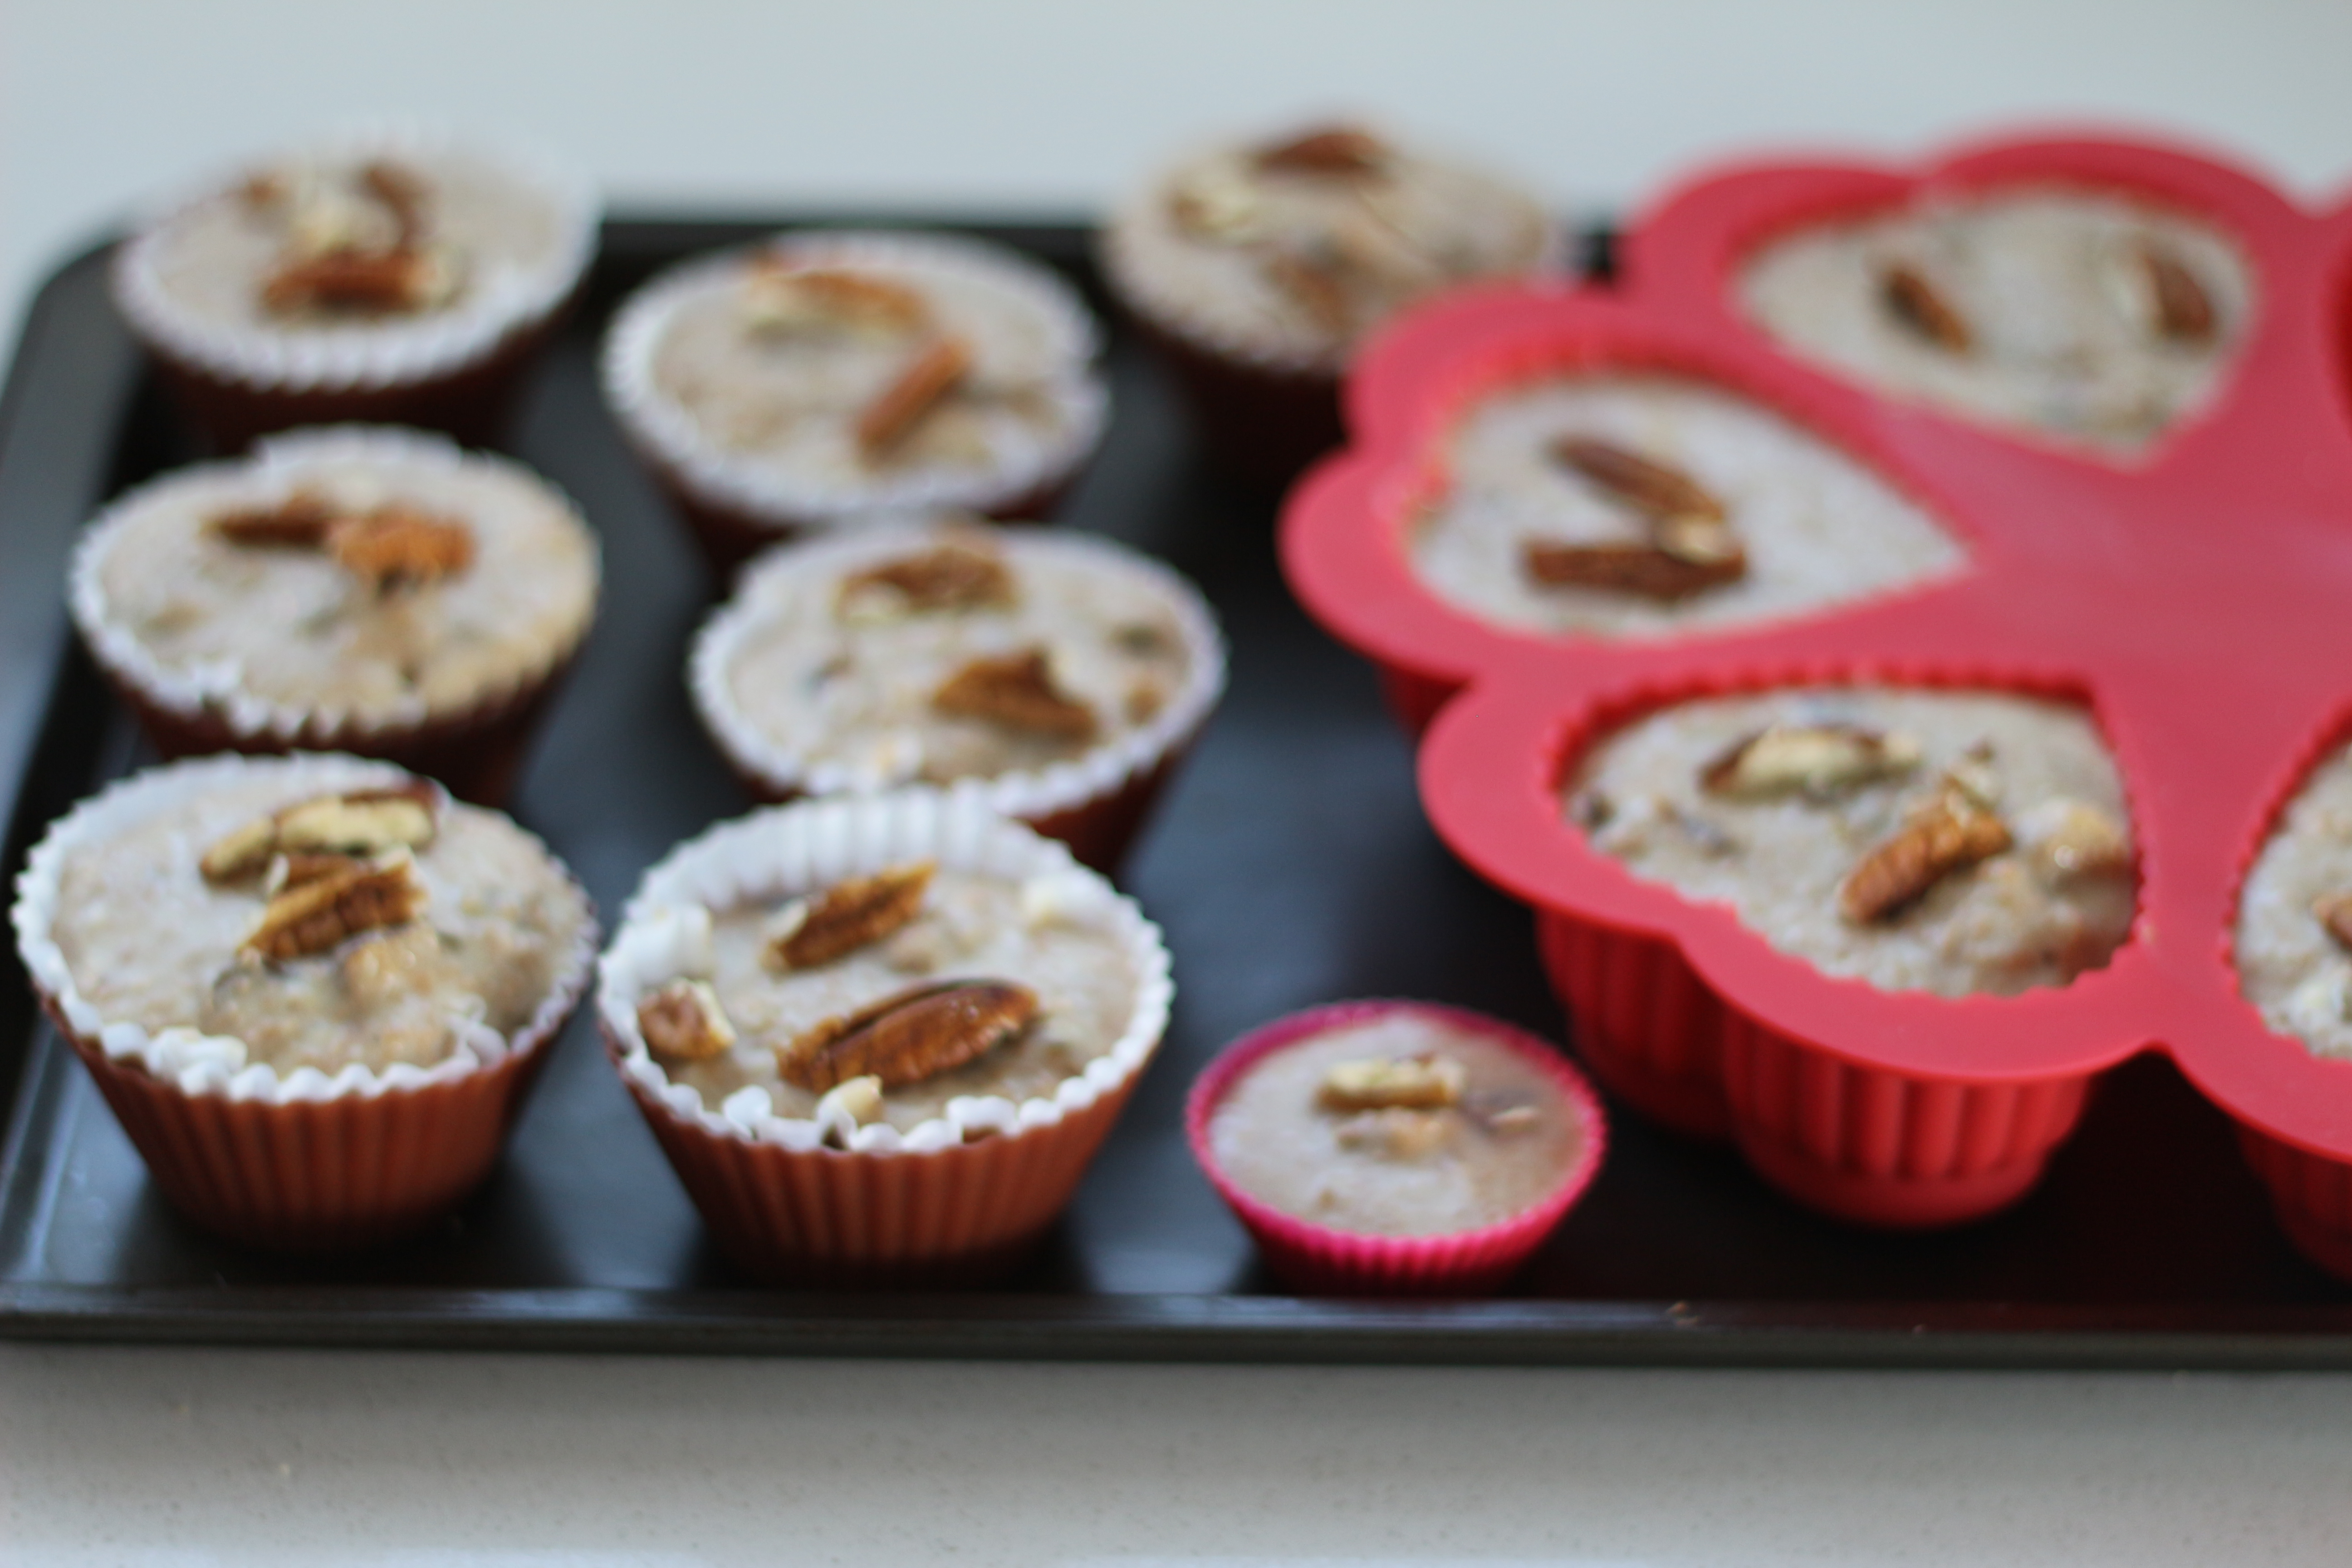 I used these silicone moulds as my muffin pans went missing during our renovations